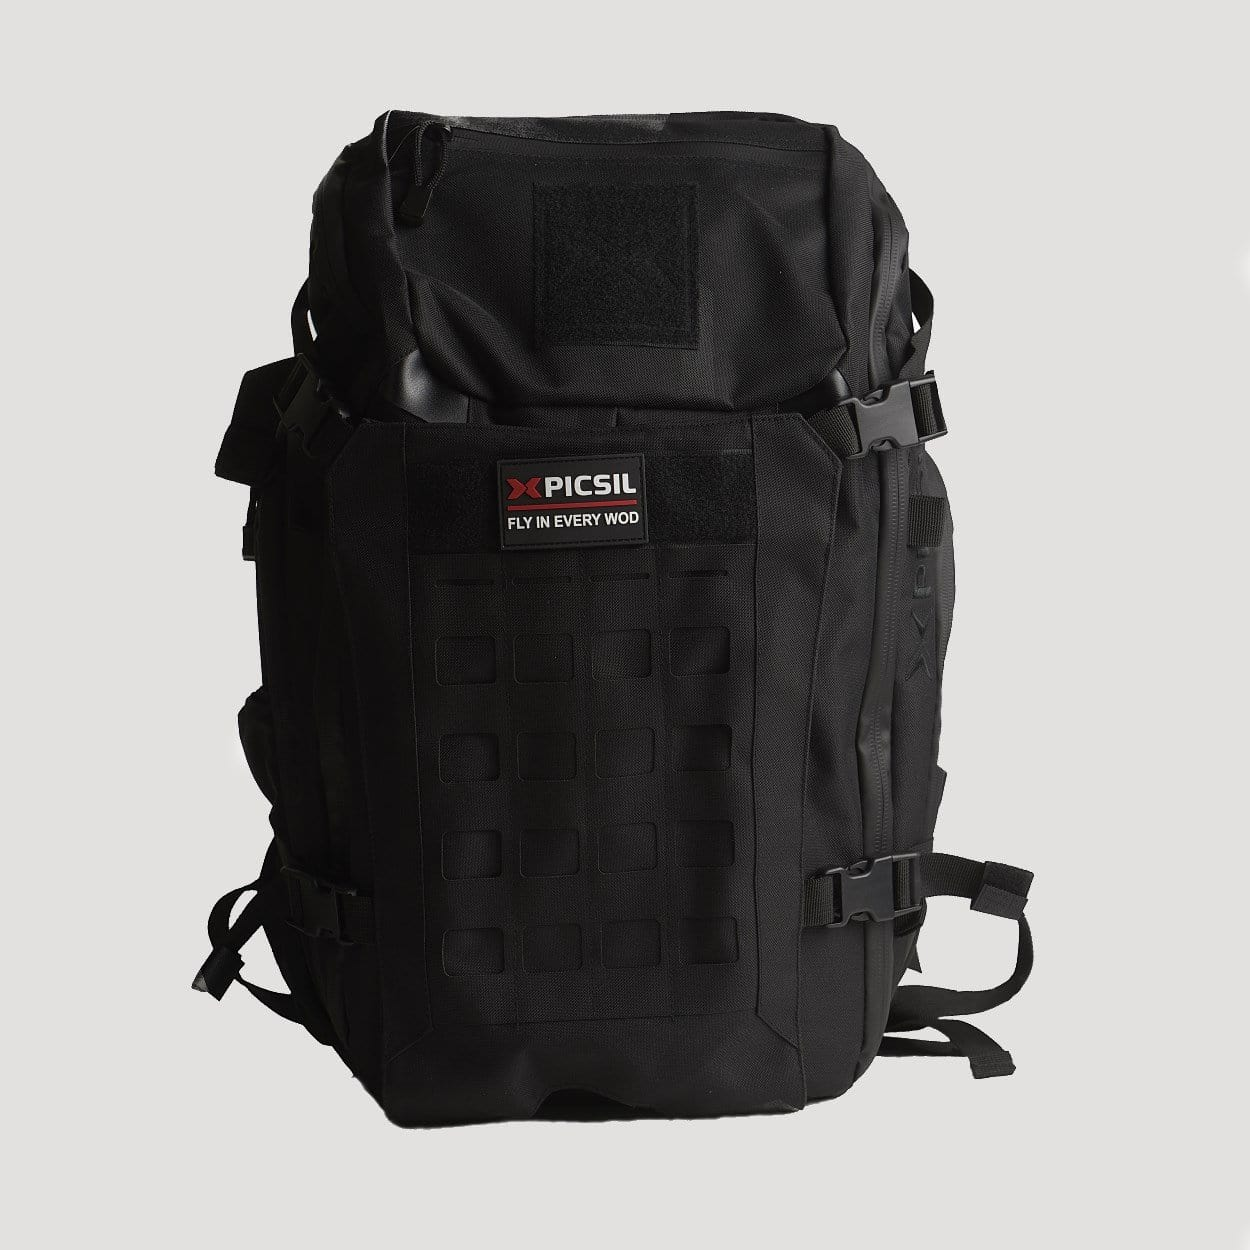 Picsil Bags One Size / Black / Unisex Picsil Tactical Backpack